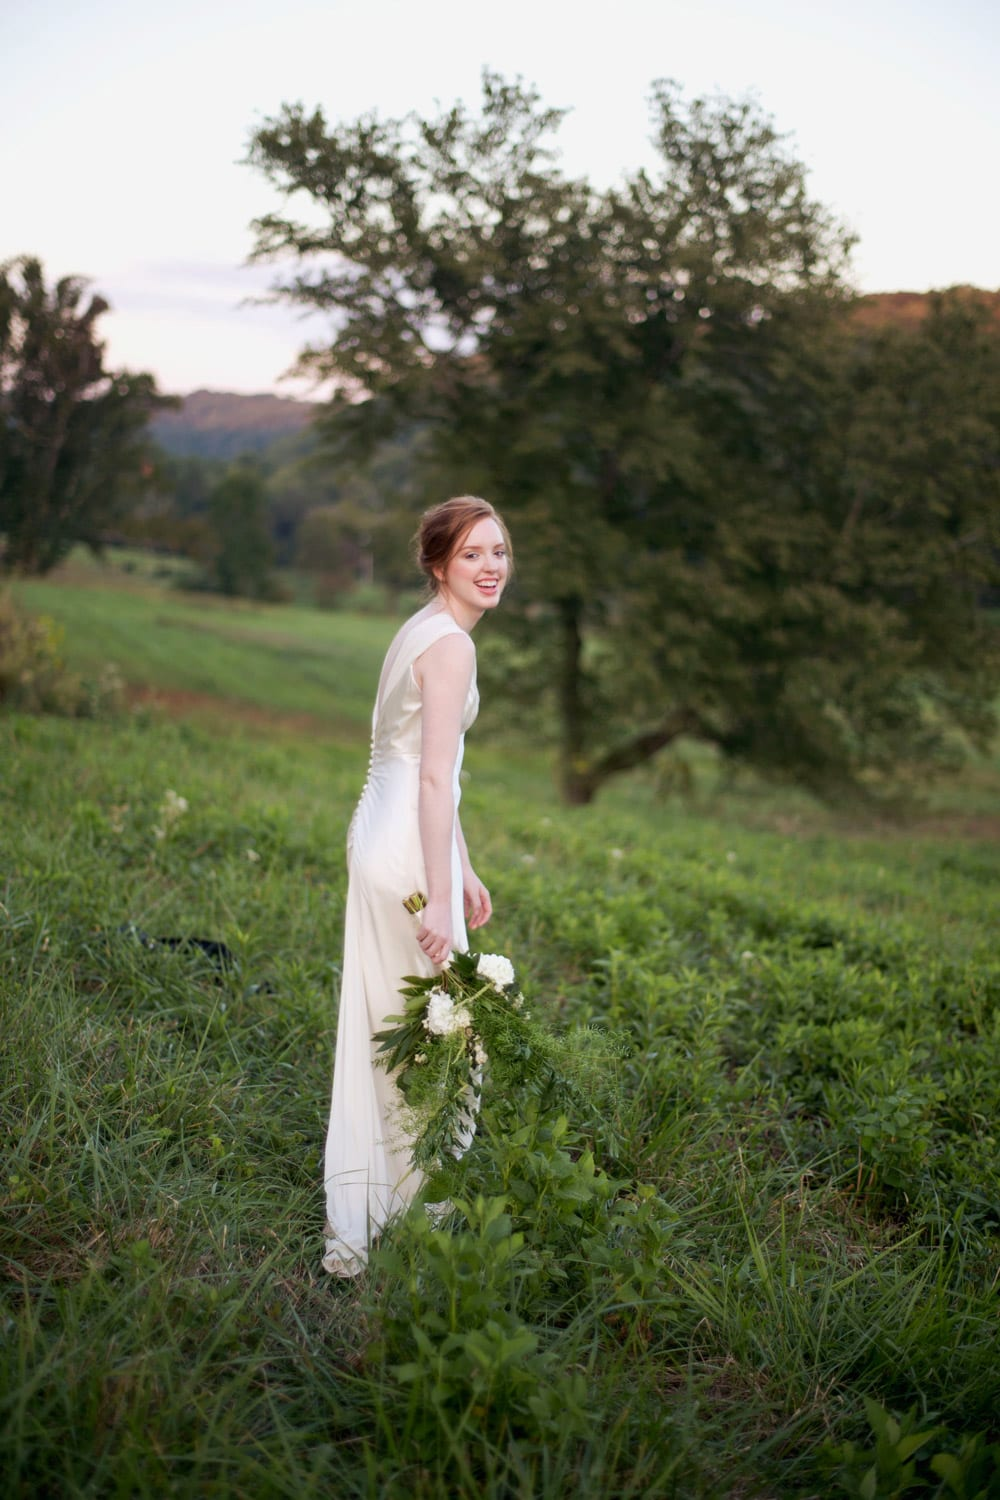 Bride holding flowers in the pasture